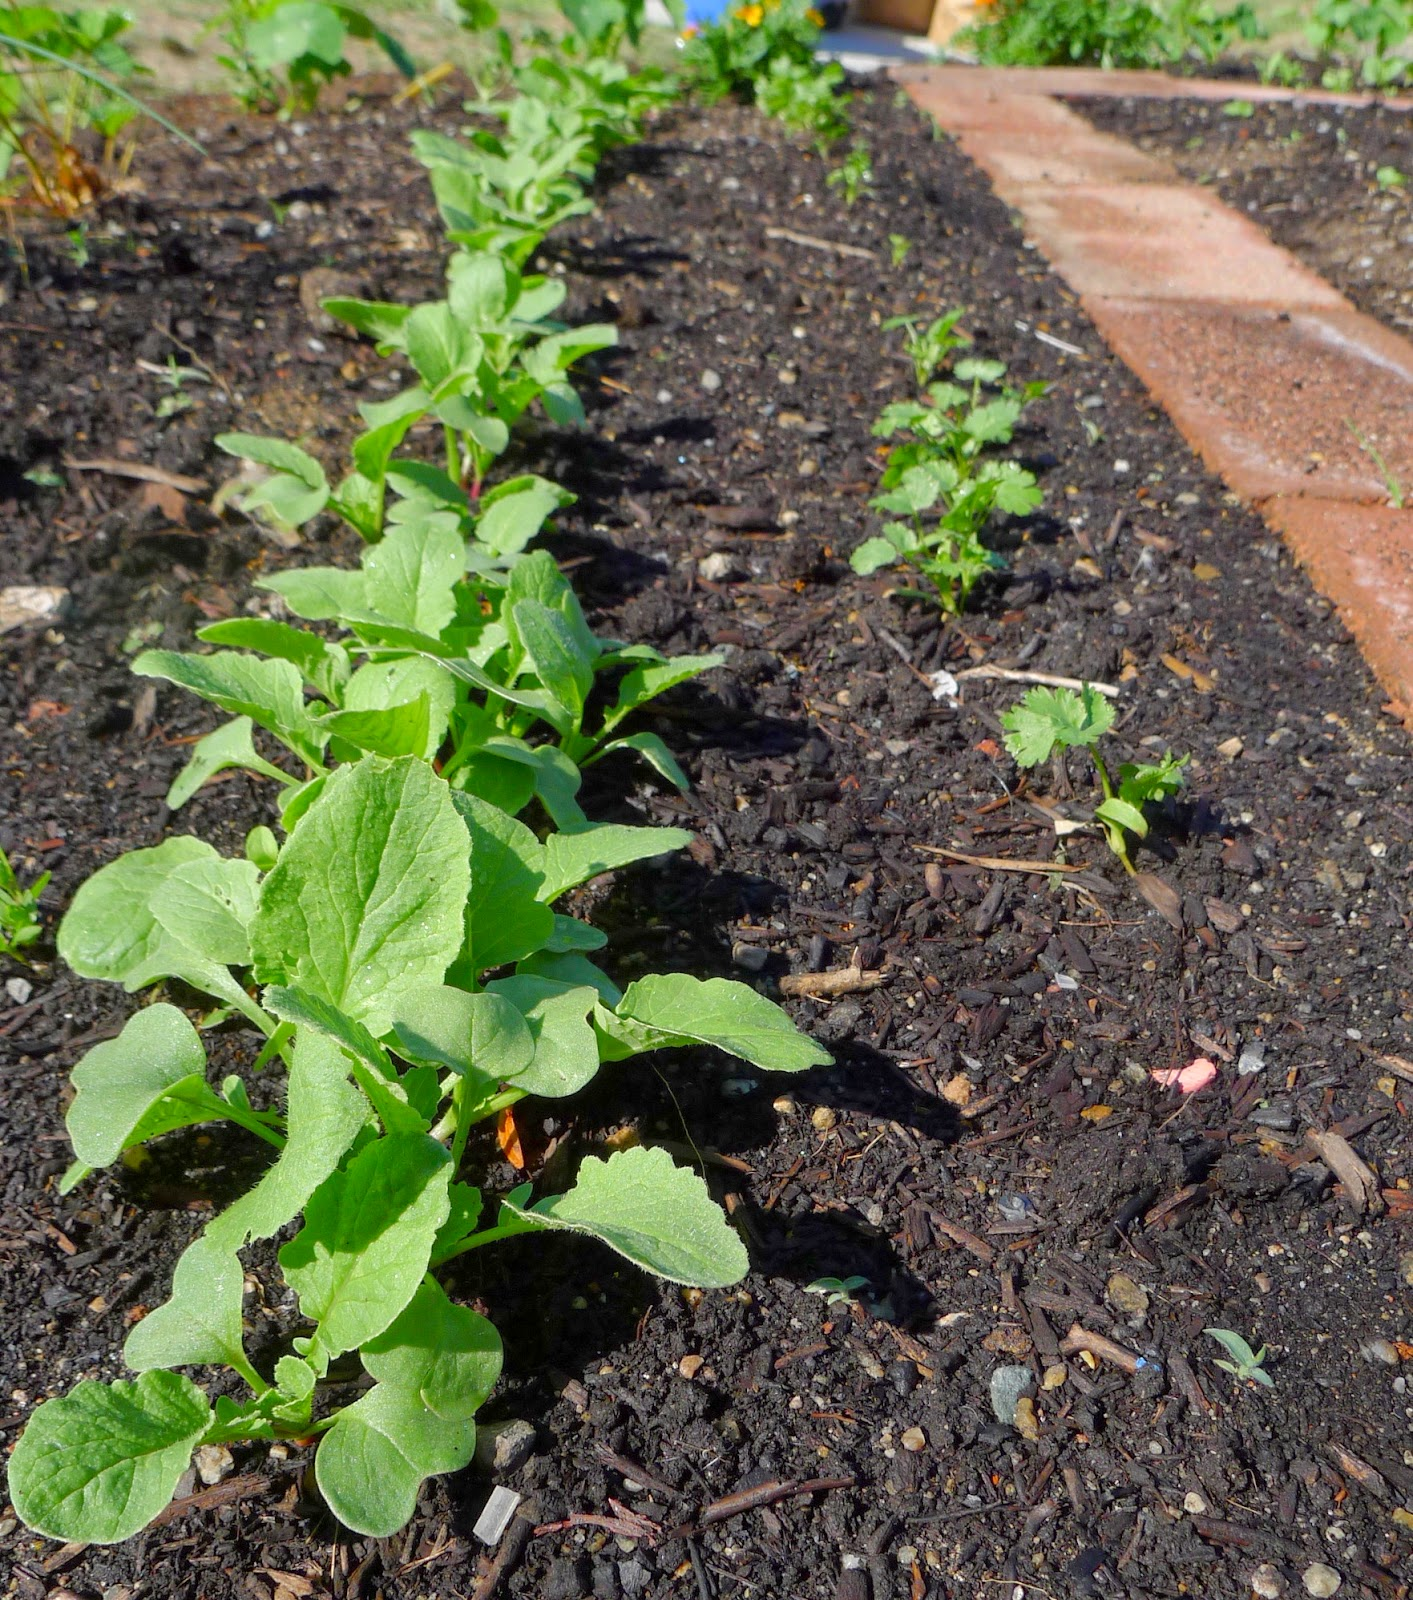 Radishes and Cilantro, using vegetables in an edible landscape